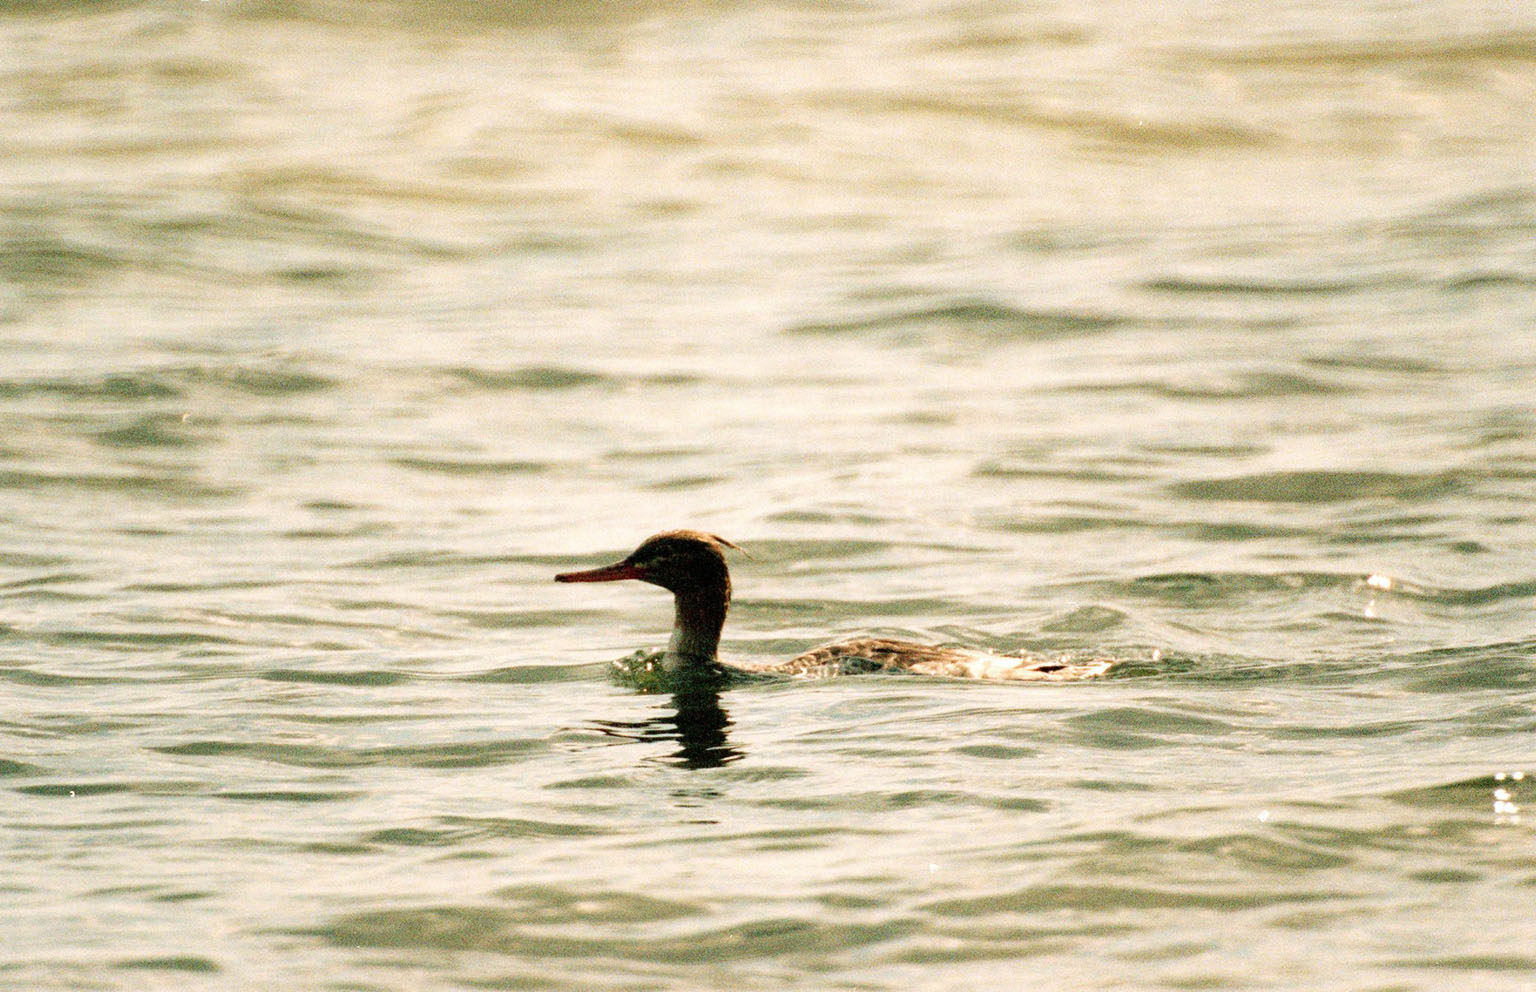 KENNEDY SPACE CENTER, FLA. -- A female red-breasted merganser swims low in the water at the Merritt Island National Wildlife Refuge, which shares a boundary with Kennedy Space Center. Usually found from Alaska and Canada south to Nebraska, Oregon and Tennessee, hooded mergansers winter south to Mexico and the Gulf Coast, including KSC. The open water of the refuge provides wintering areas for 23 species of migratory waterfowl, as well as a year-round home for great blue herons, great egrets, wood storks, cormorants, brown pelicans and other species of marsh and shore birds. The 92,000-acre refuge is also habitat for more than 310 species of birds, 25 mammals, 117 fishes and 65 amphibians and reptiles